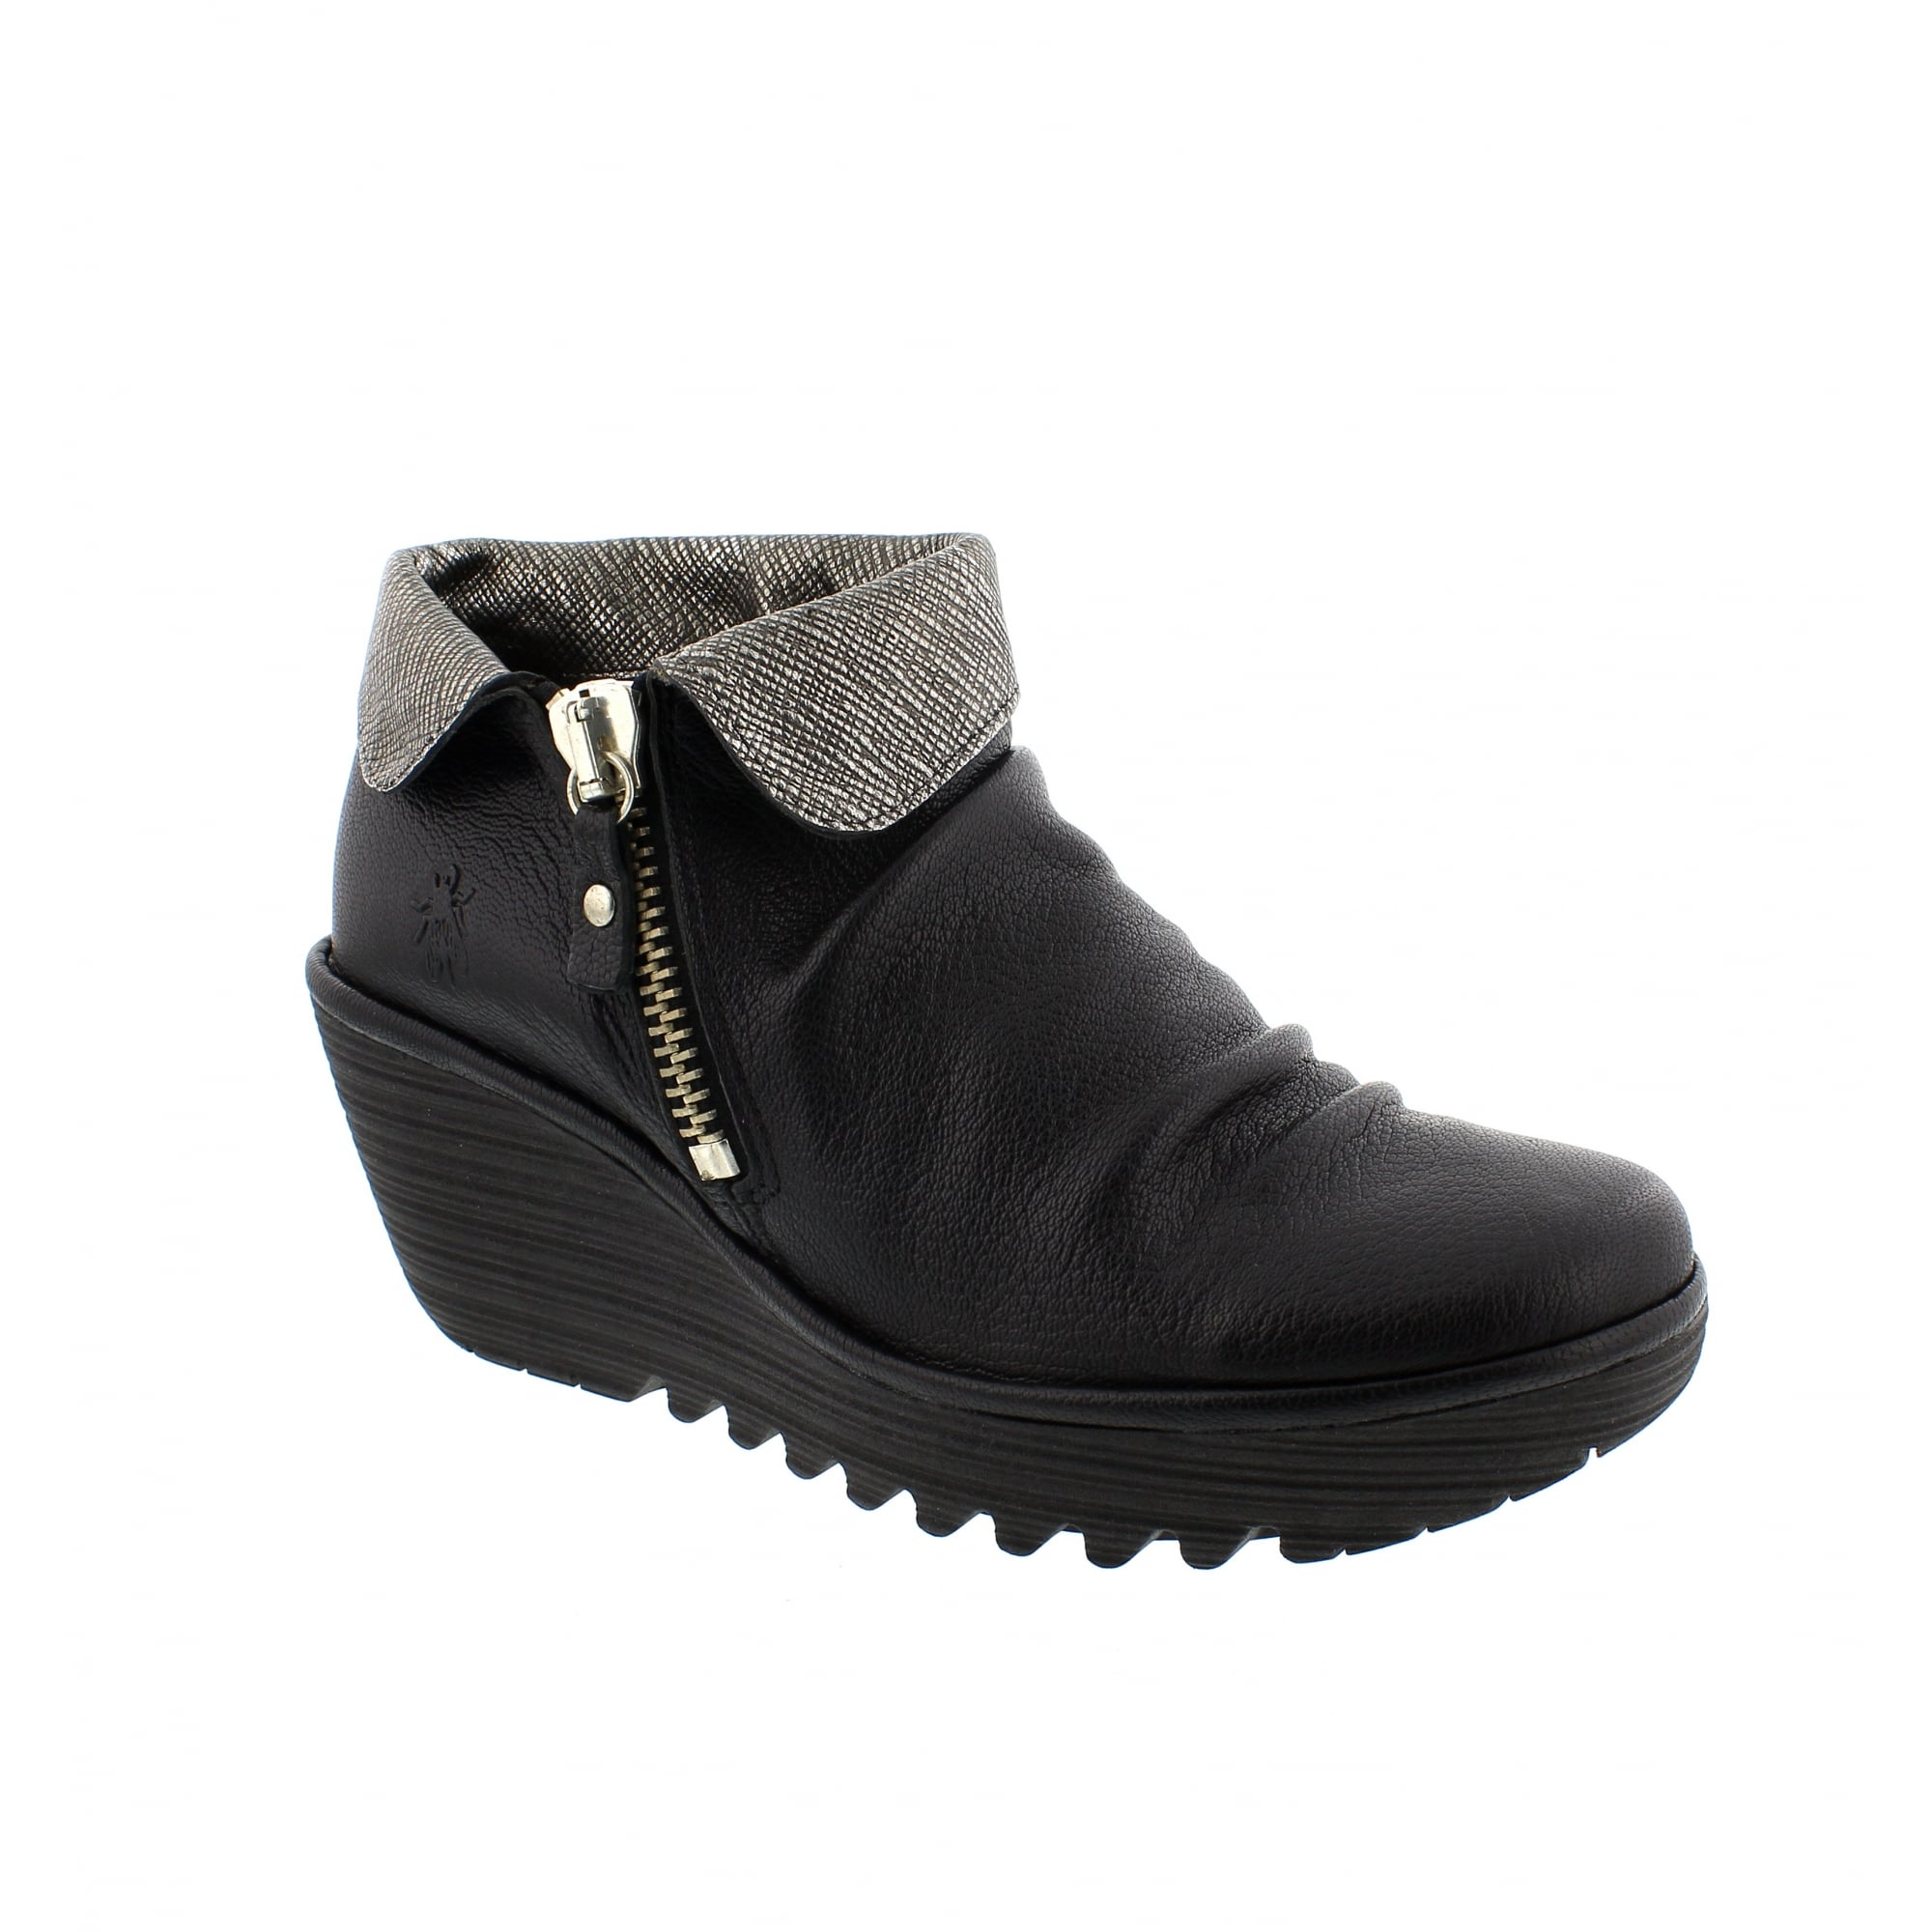 7b031cdd6a5 Fly London Yoxi 500755-004 Womens Ankle Boots